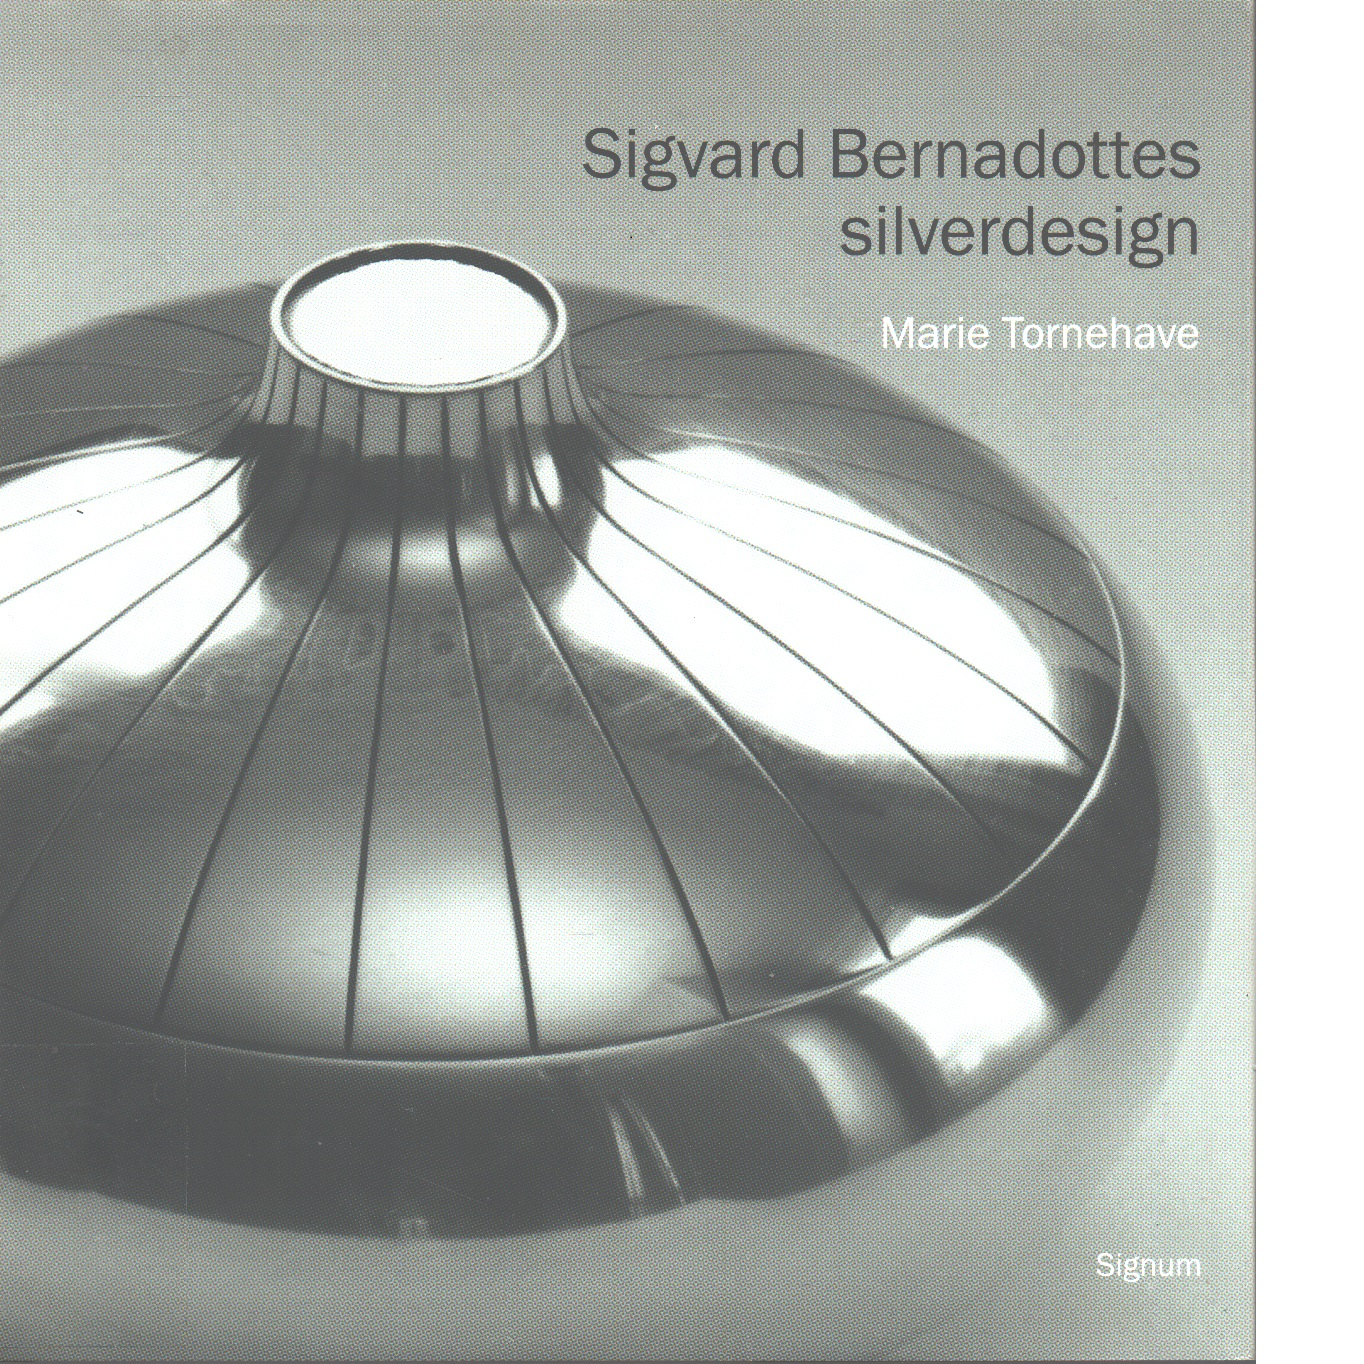 Sigvard Bernadottes silverdesign - Tornehave, Marie